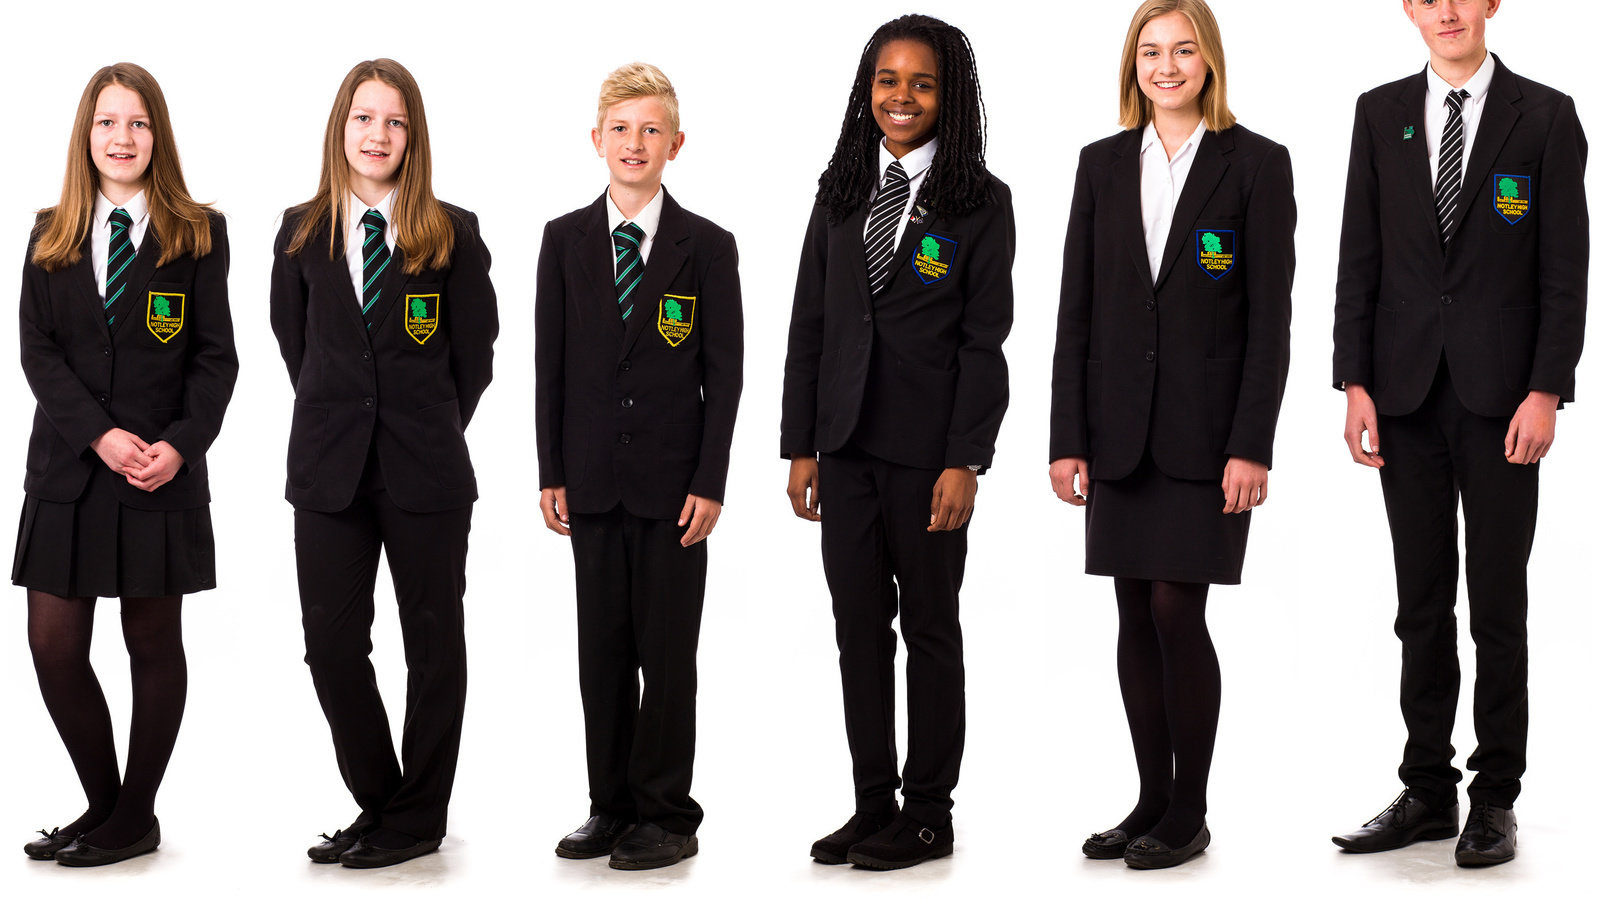 school unifoms Shop the latest school uniforms for girls' and boys' including all the top school uniform brands at walmartcom you can send your child back to school in style with high quality school uniforms including polos, pants, skirts and more.